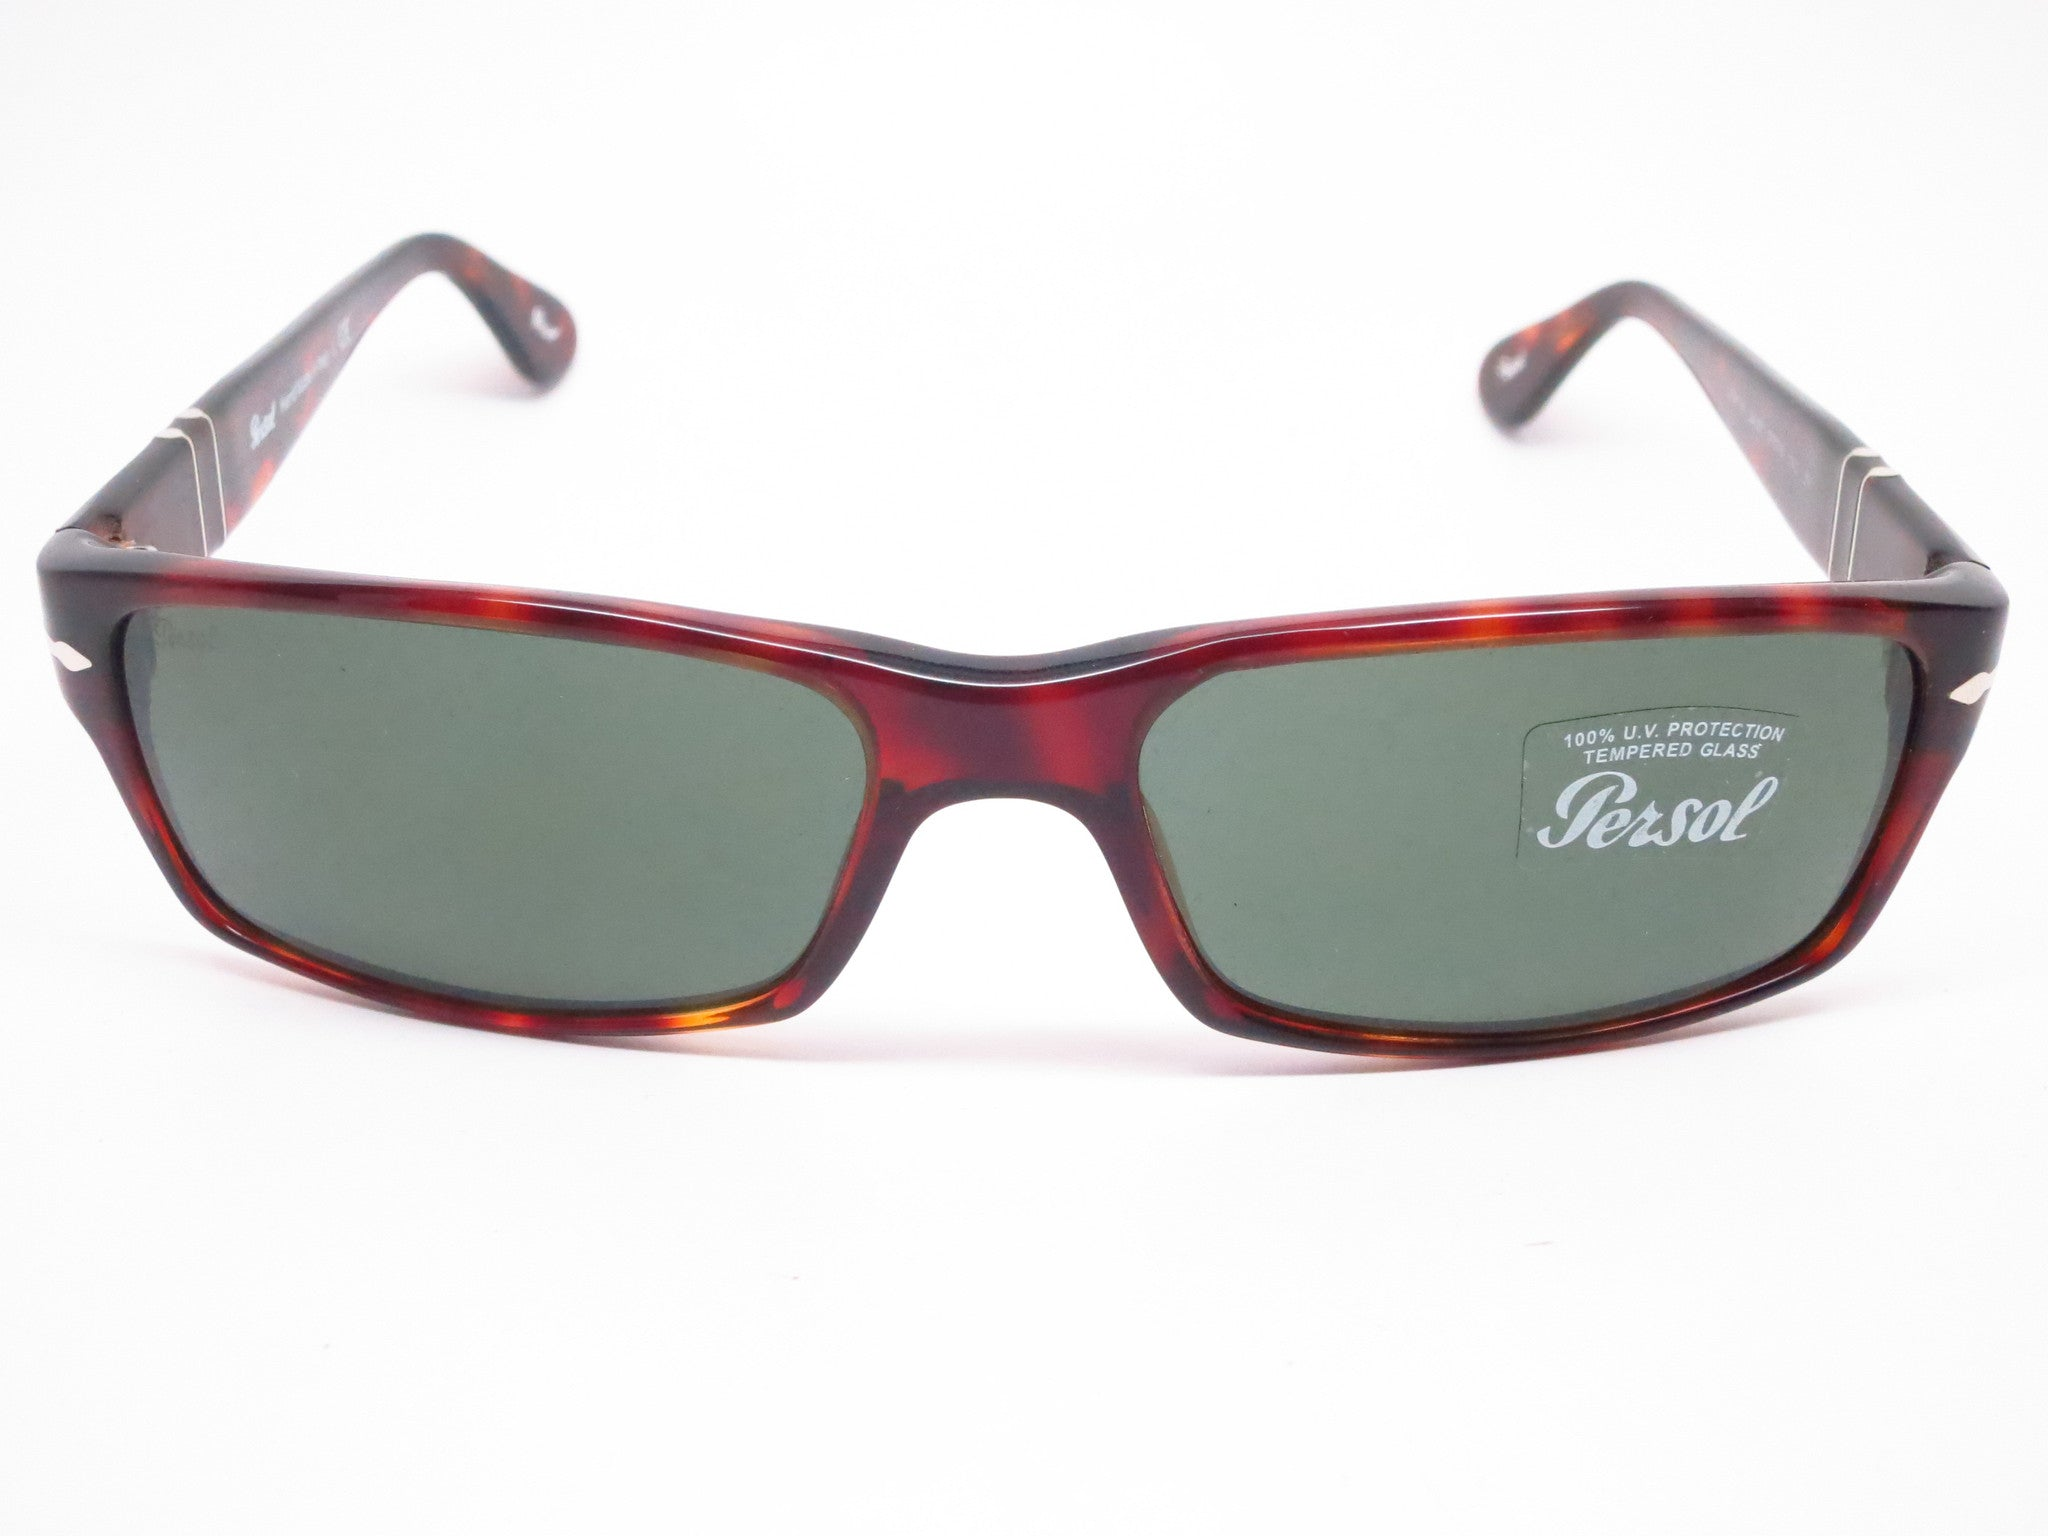 e865e689369 ... Persol PO 2747S 24 31 Havana Sunglasses - Eye Heart Shades - Persol -  Sunglasses ...